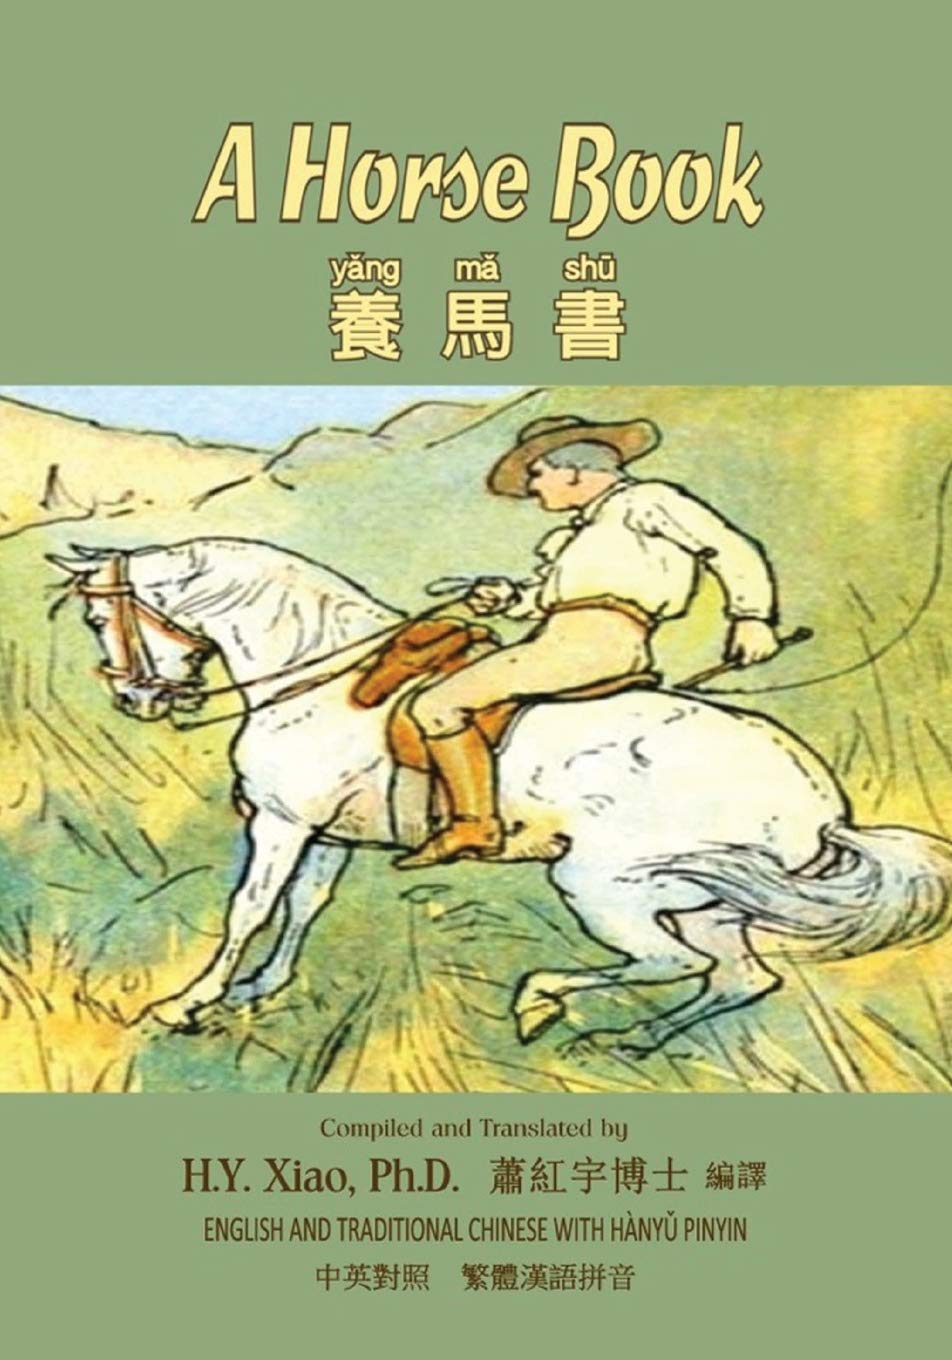 Download A Horse Book (Traditional Chinese): 04 Hanyu Pinyin Paperback B&W (Dumpy Book for Children) (Volume 12) (Chinese Edition) PDF